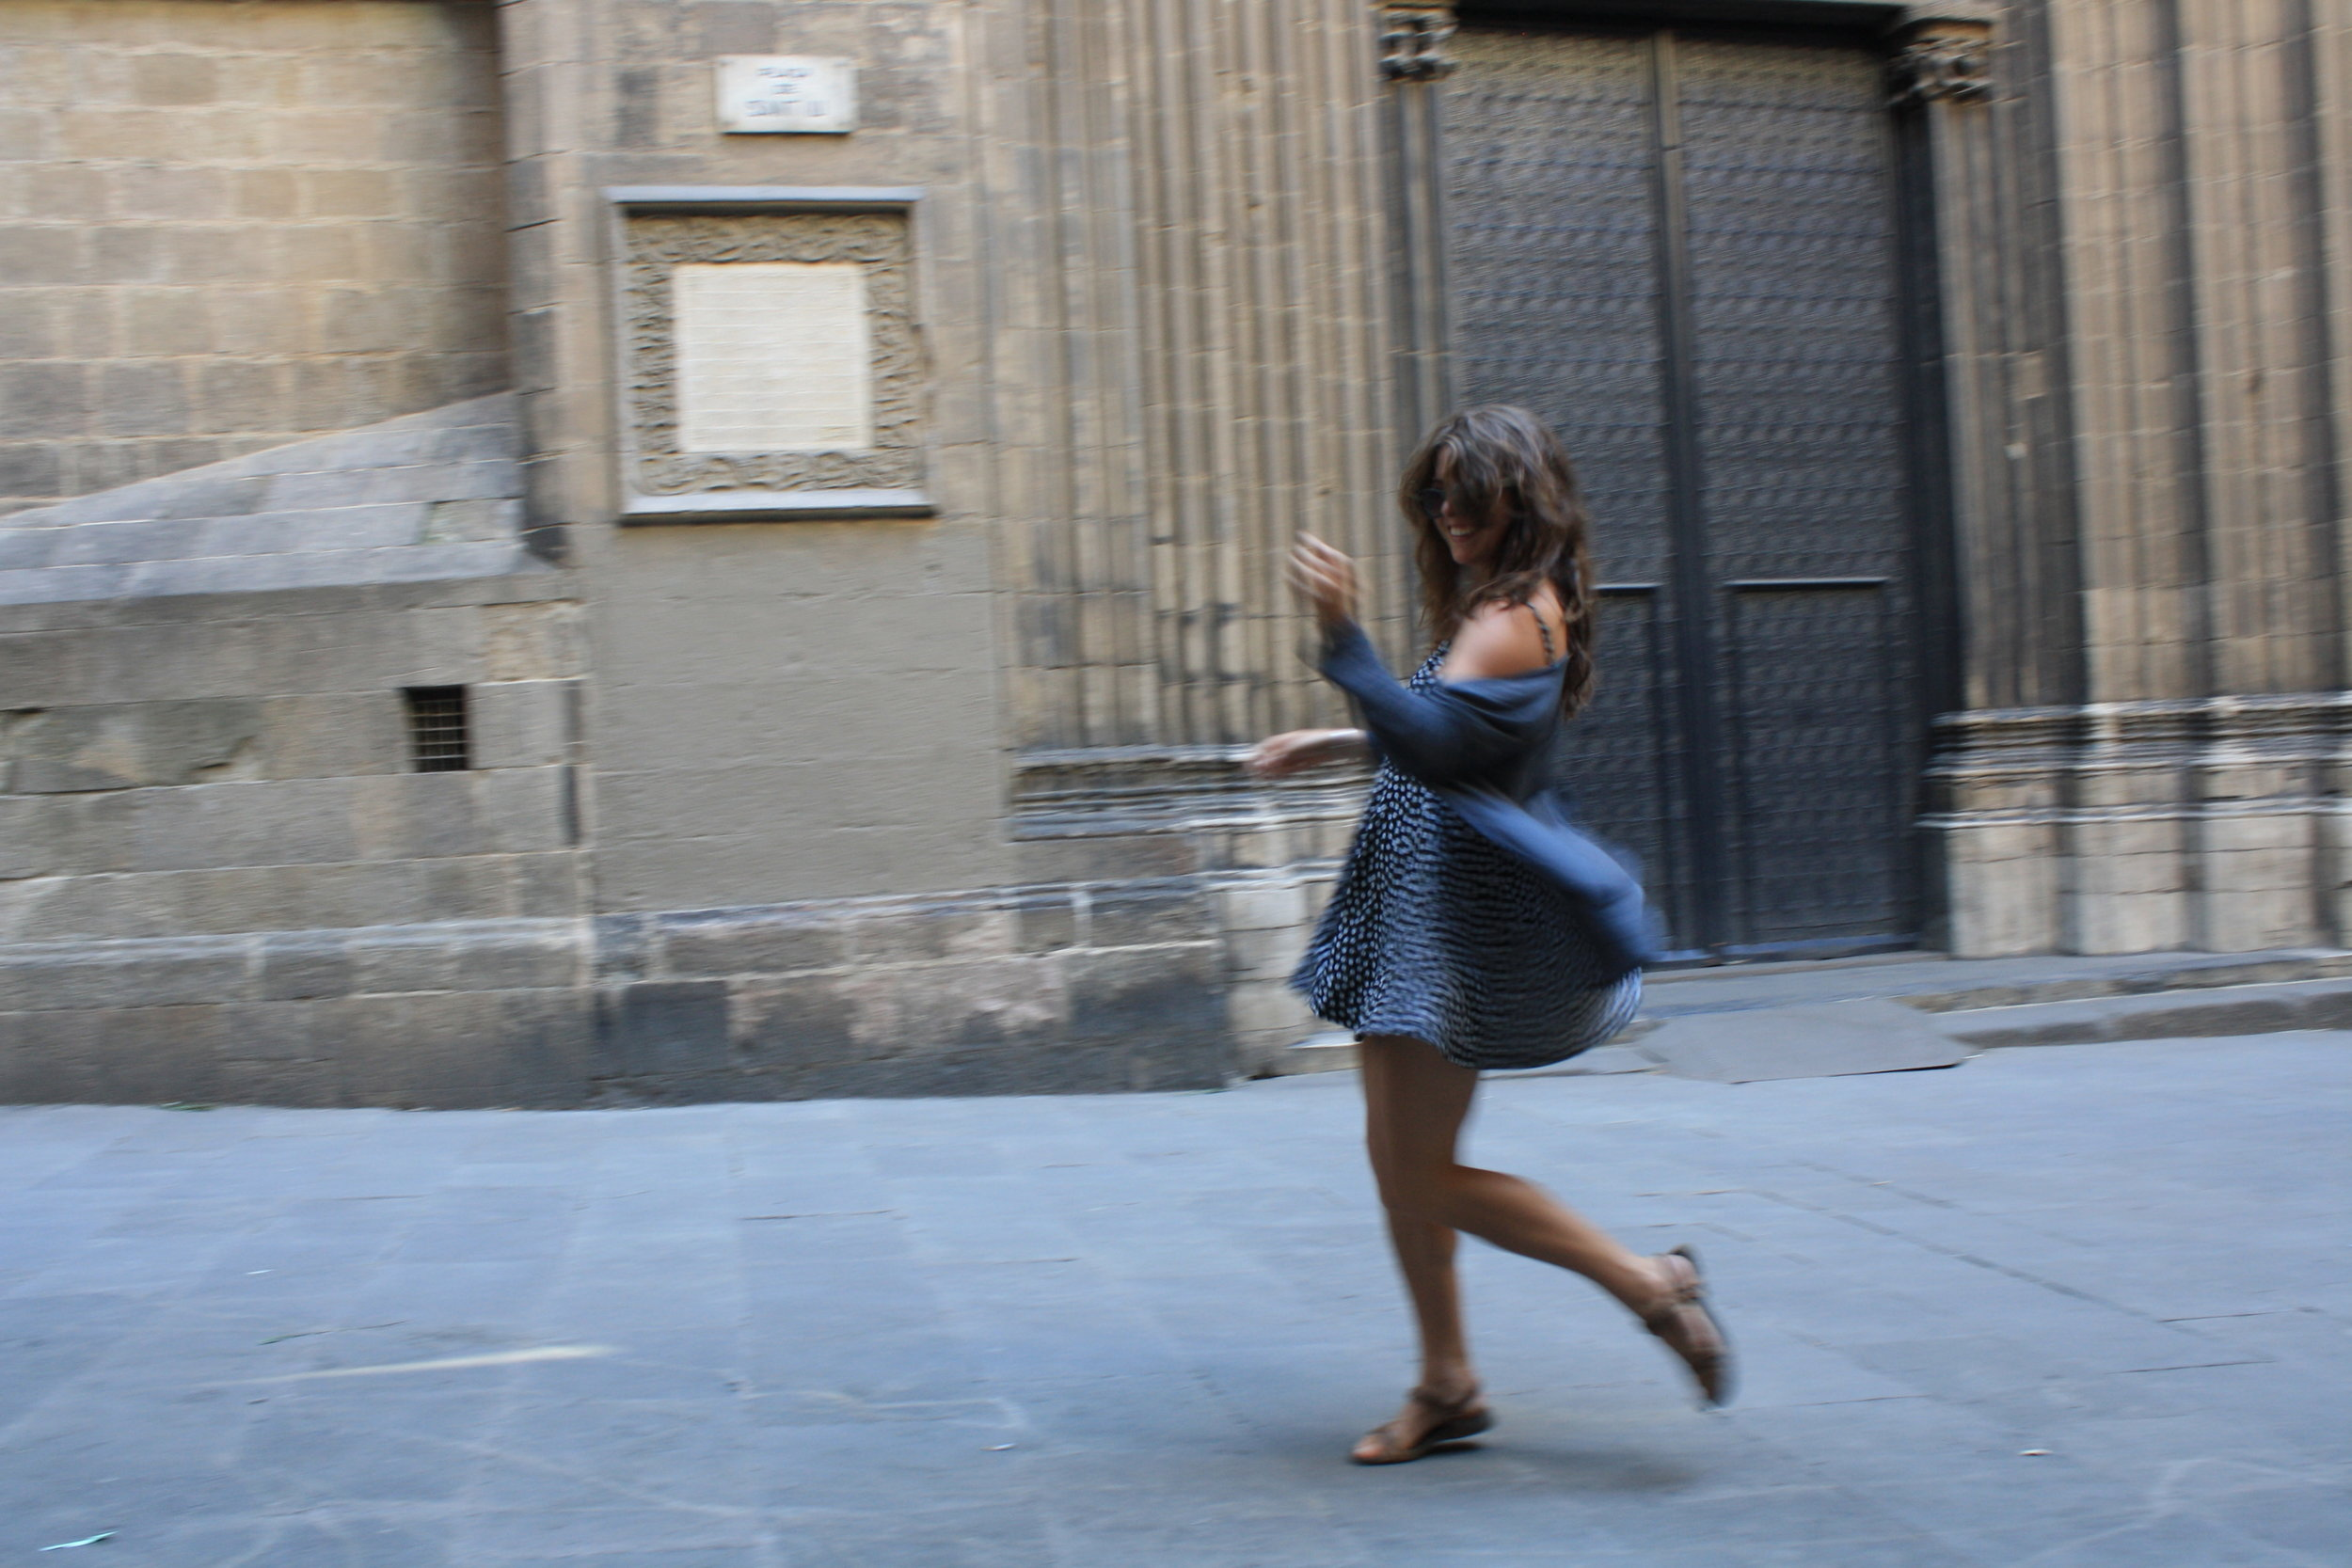 Dancing to a busker in the shadow of a cathedral courtyard in Barcelona, age 22. Photo by future husband.